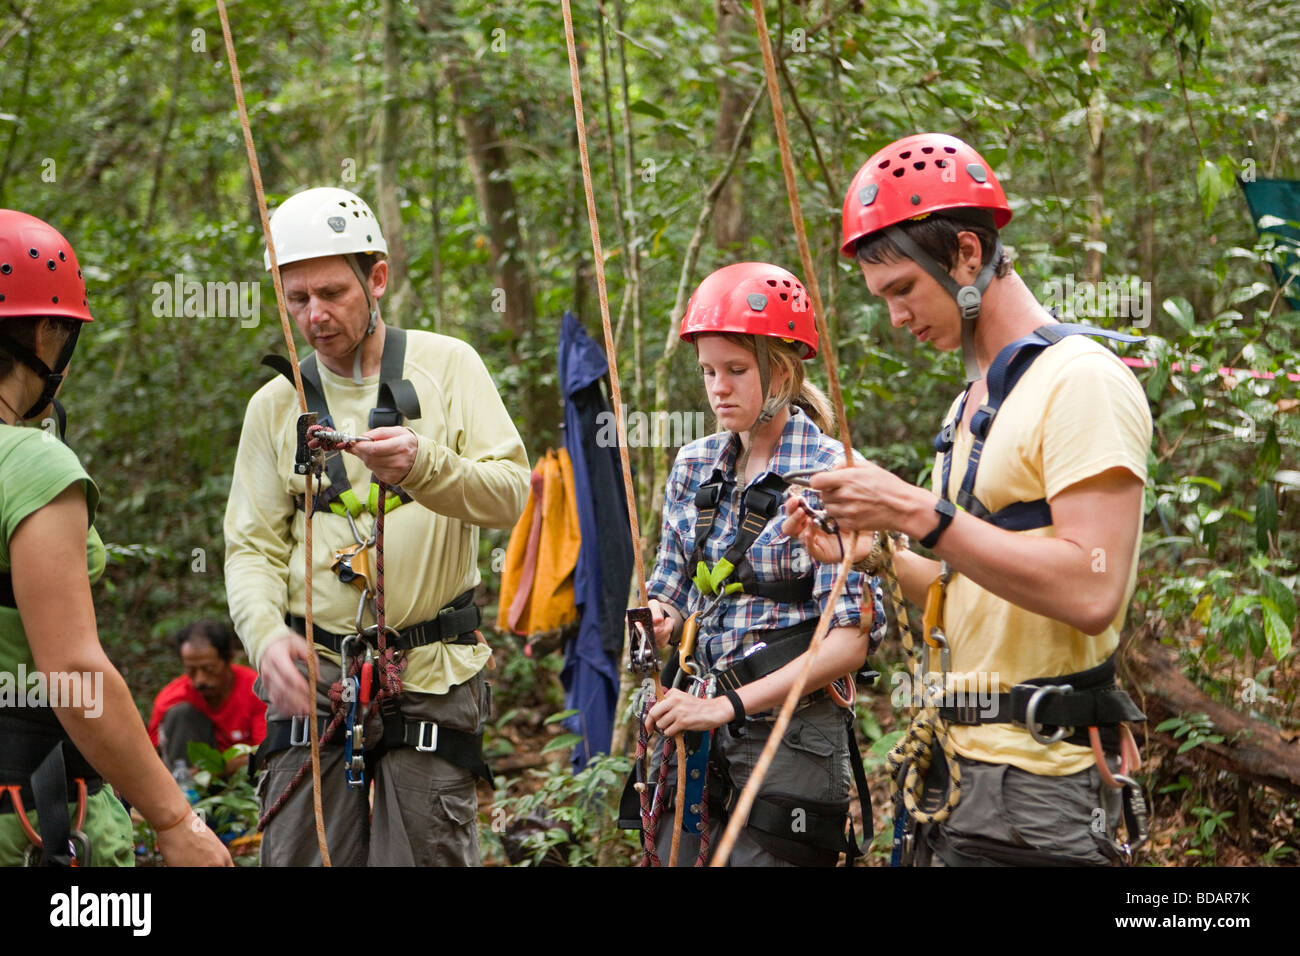 Indonesia Sulawesi Operation Wallacea Lambusango forest reserve canopy access student instruction  sc 1 st  Alamy & Indonesia Sulawesi Operation Wallacea Lambusango forest reserve ...